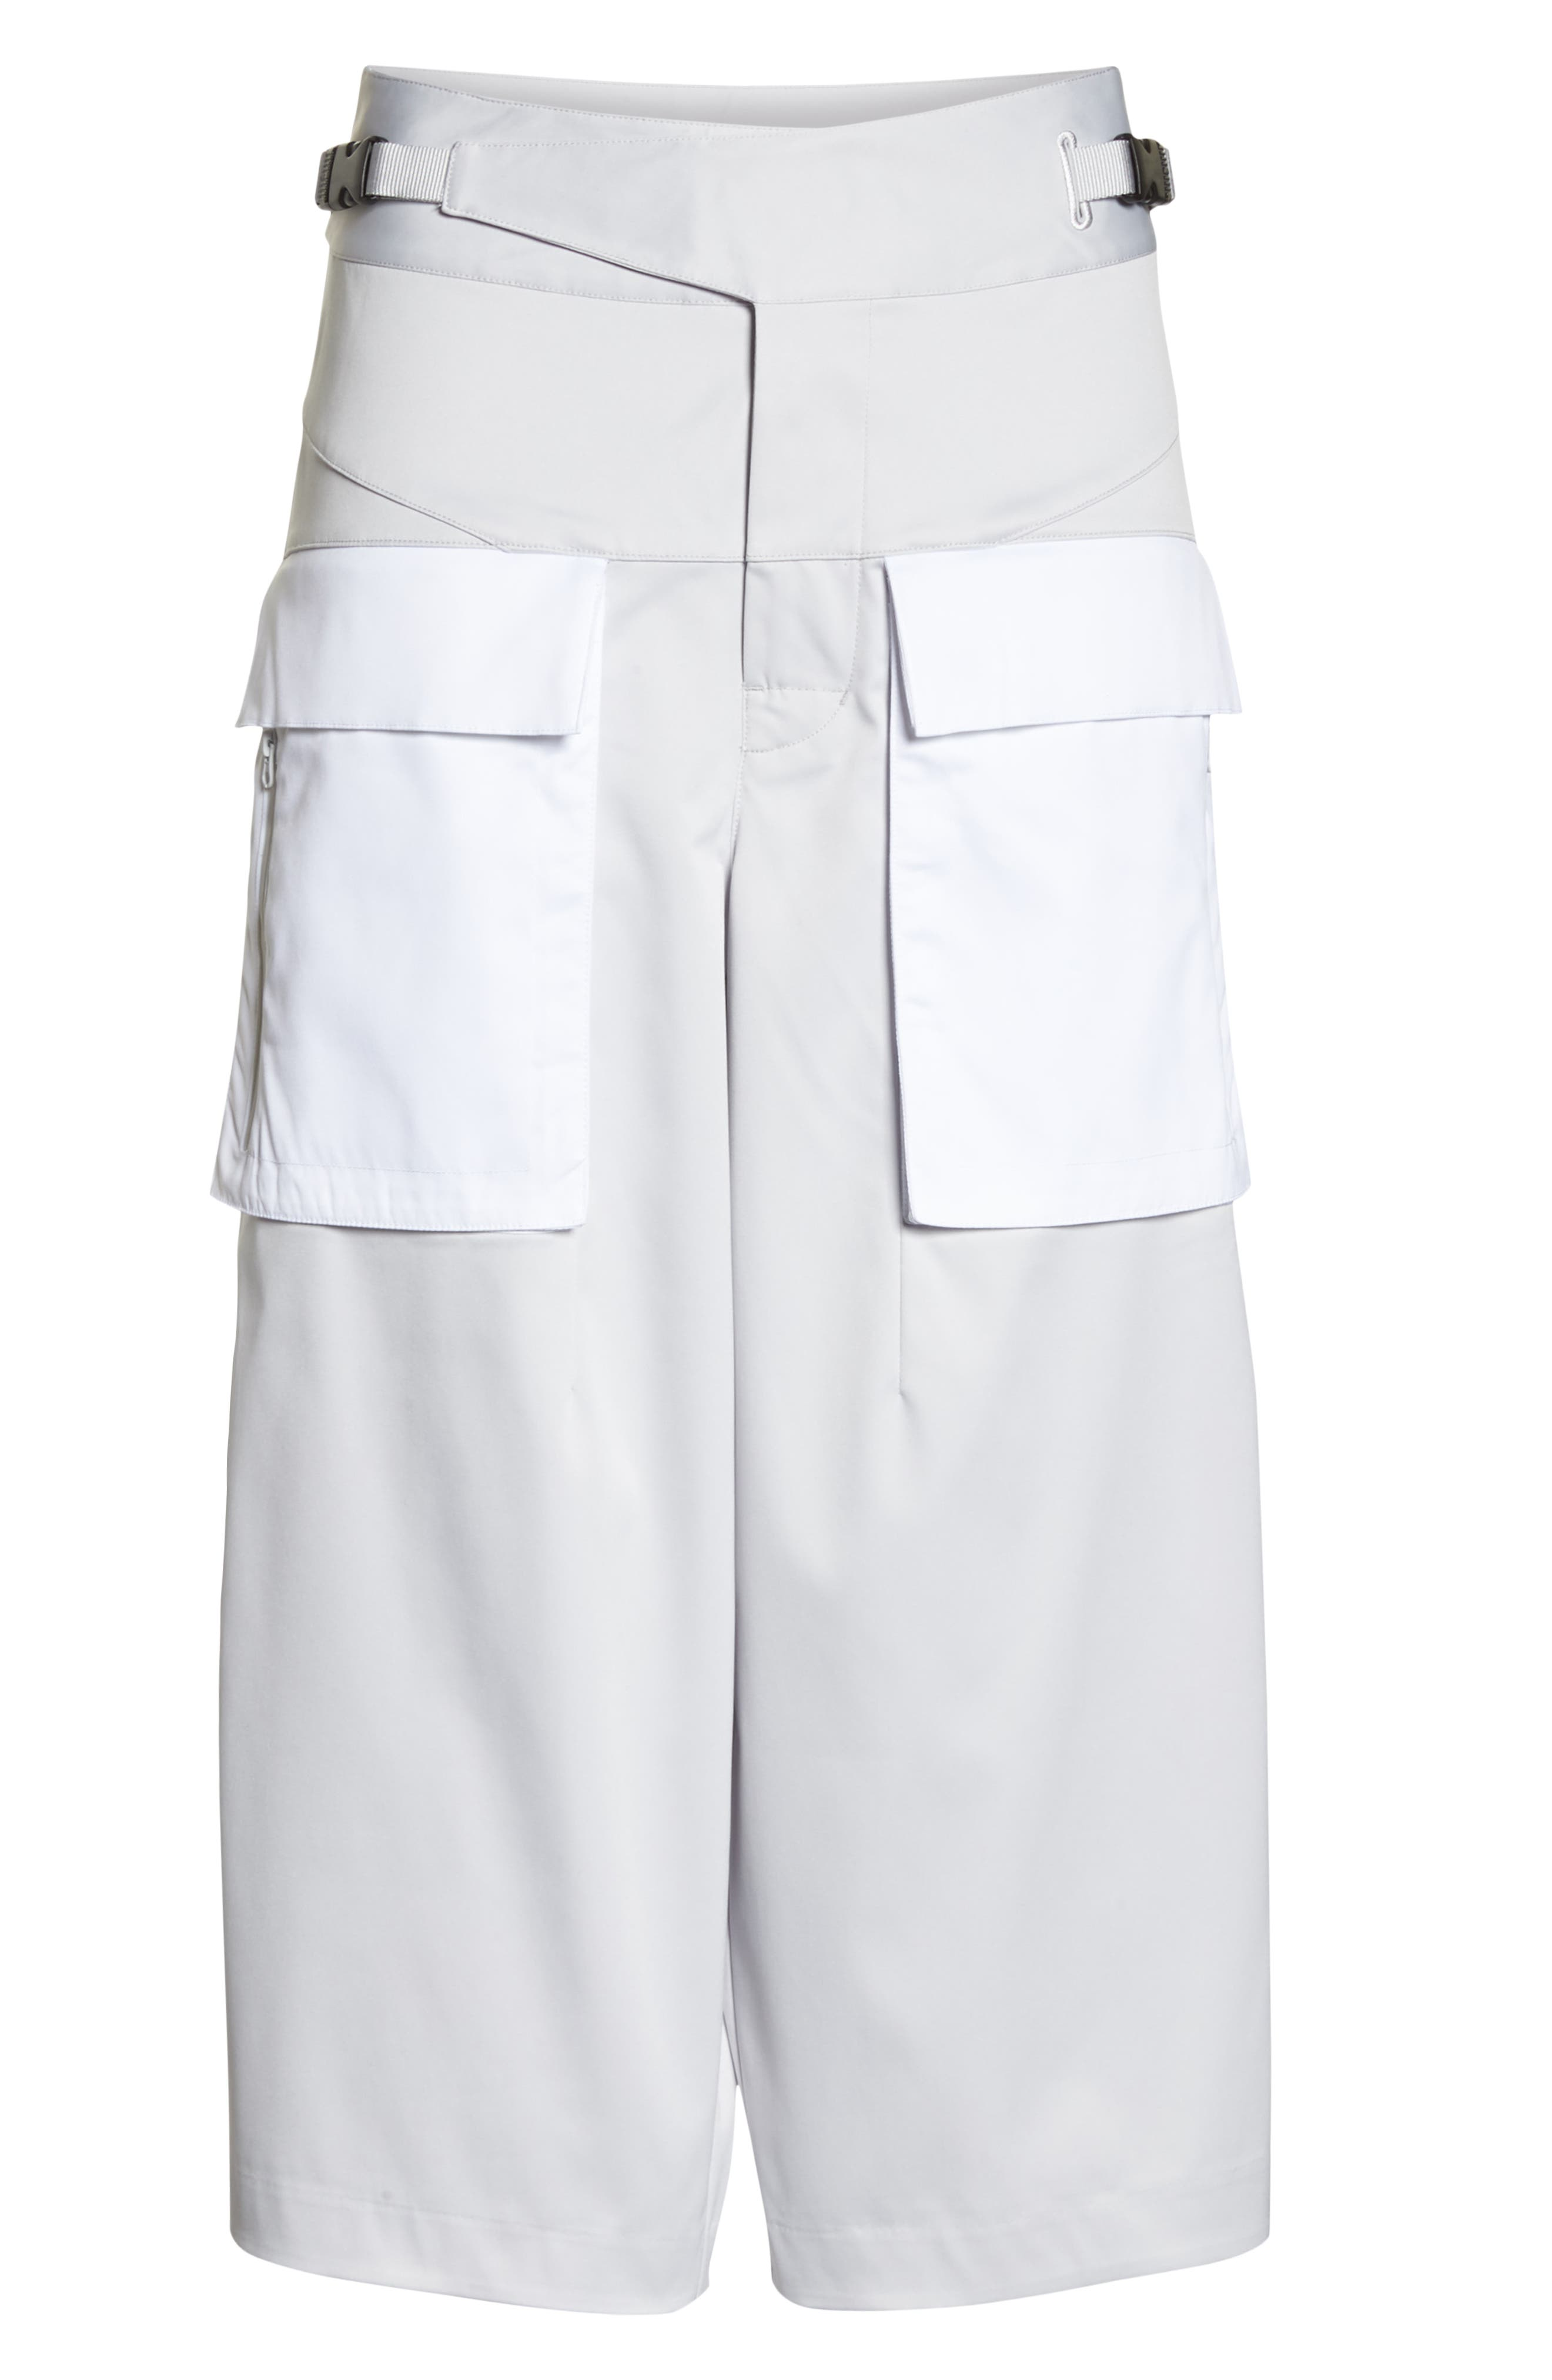 Utility Culottes,                             Alternate thumbnail 7, color,                             Vast Grey/ White/ Vast Grey